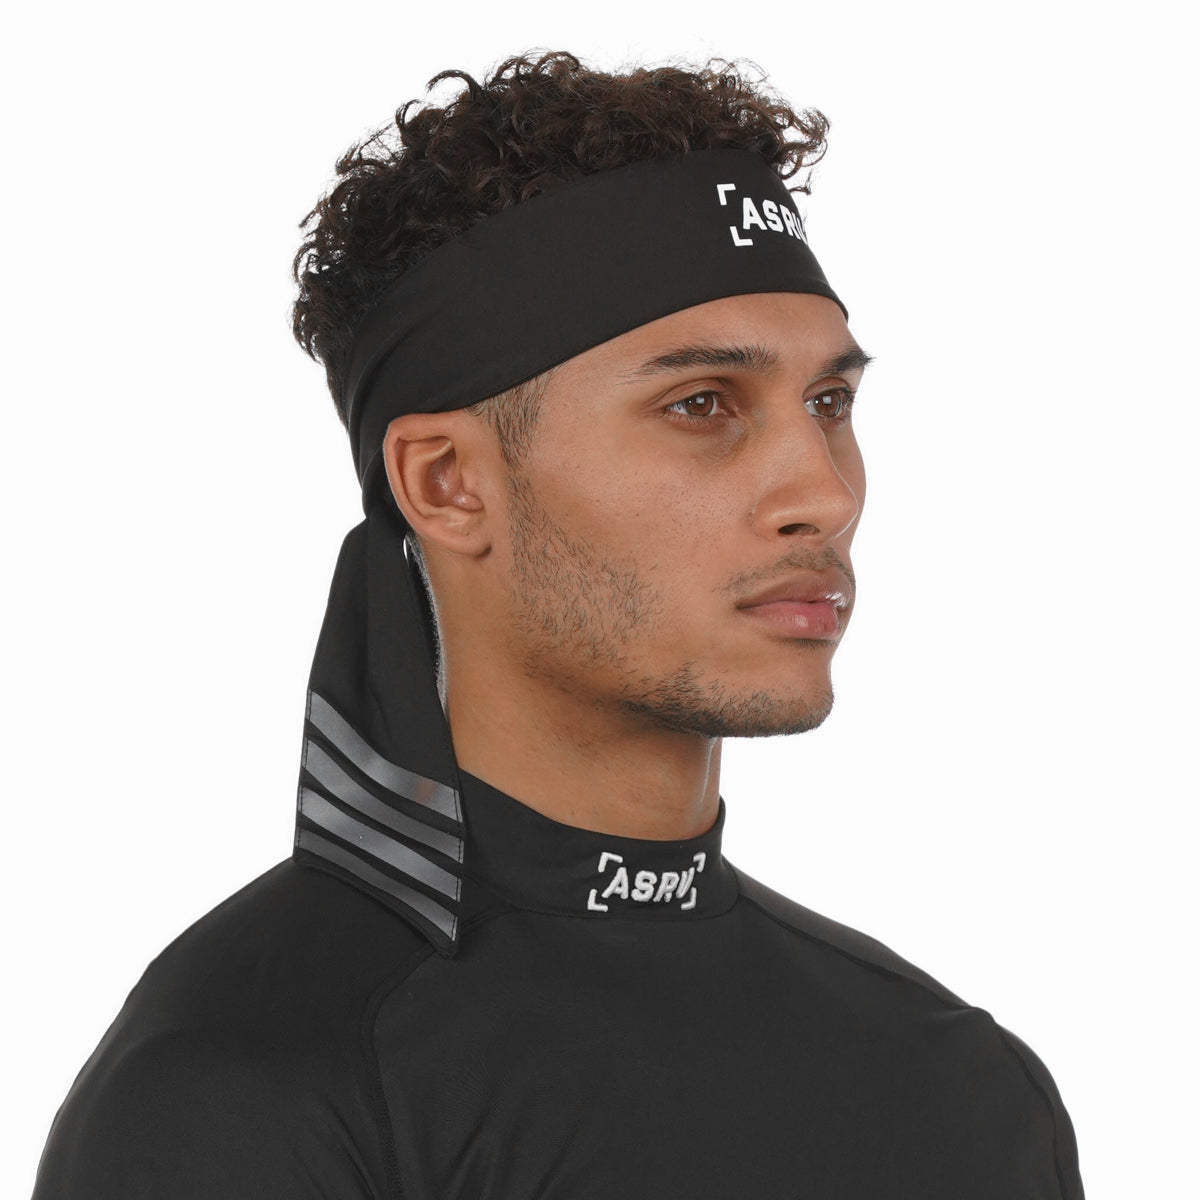 Ninja Headband SilverPlus® - Black